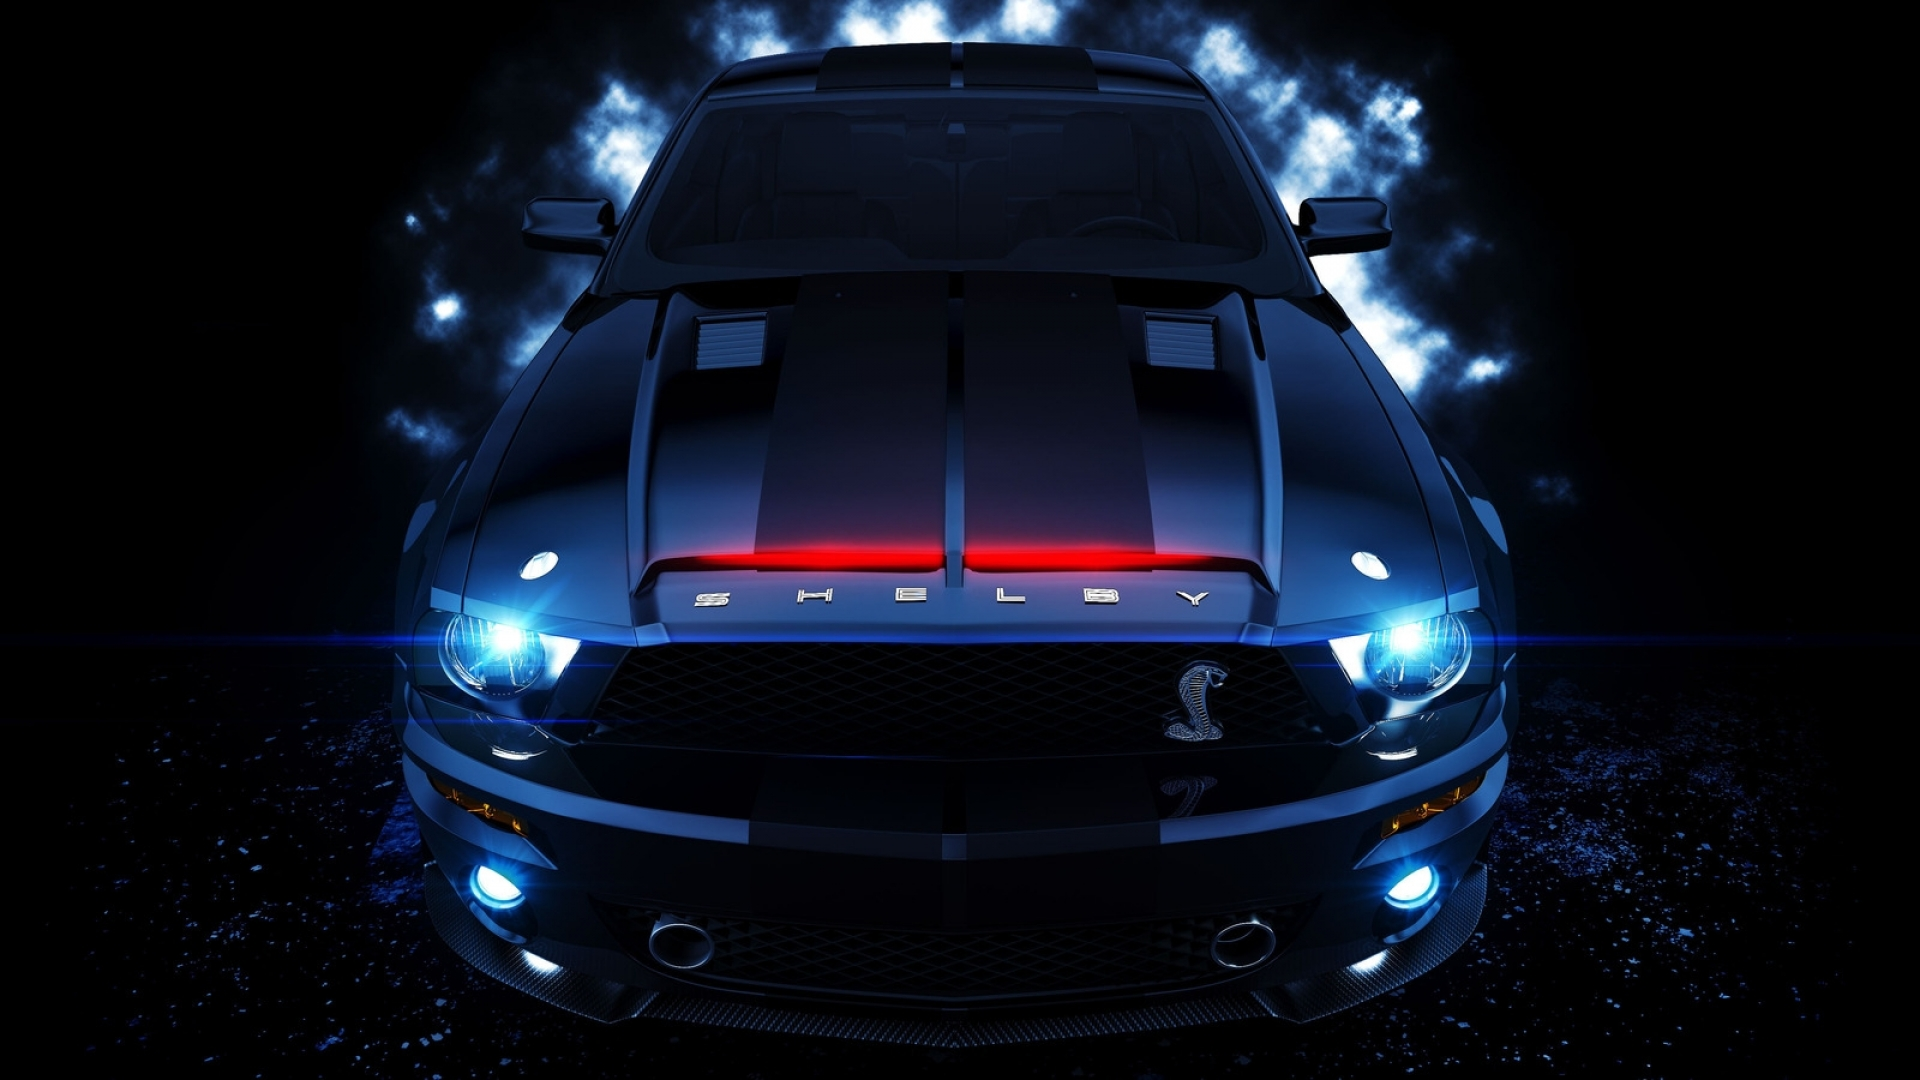 F 150 Shelby >> Ford Mustang Shelby GT500 Wallpapers, Pictures, Images